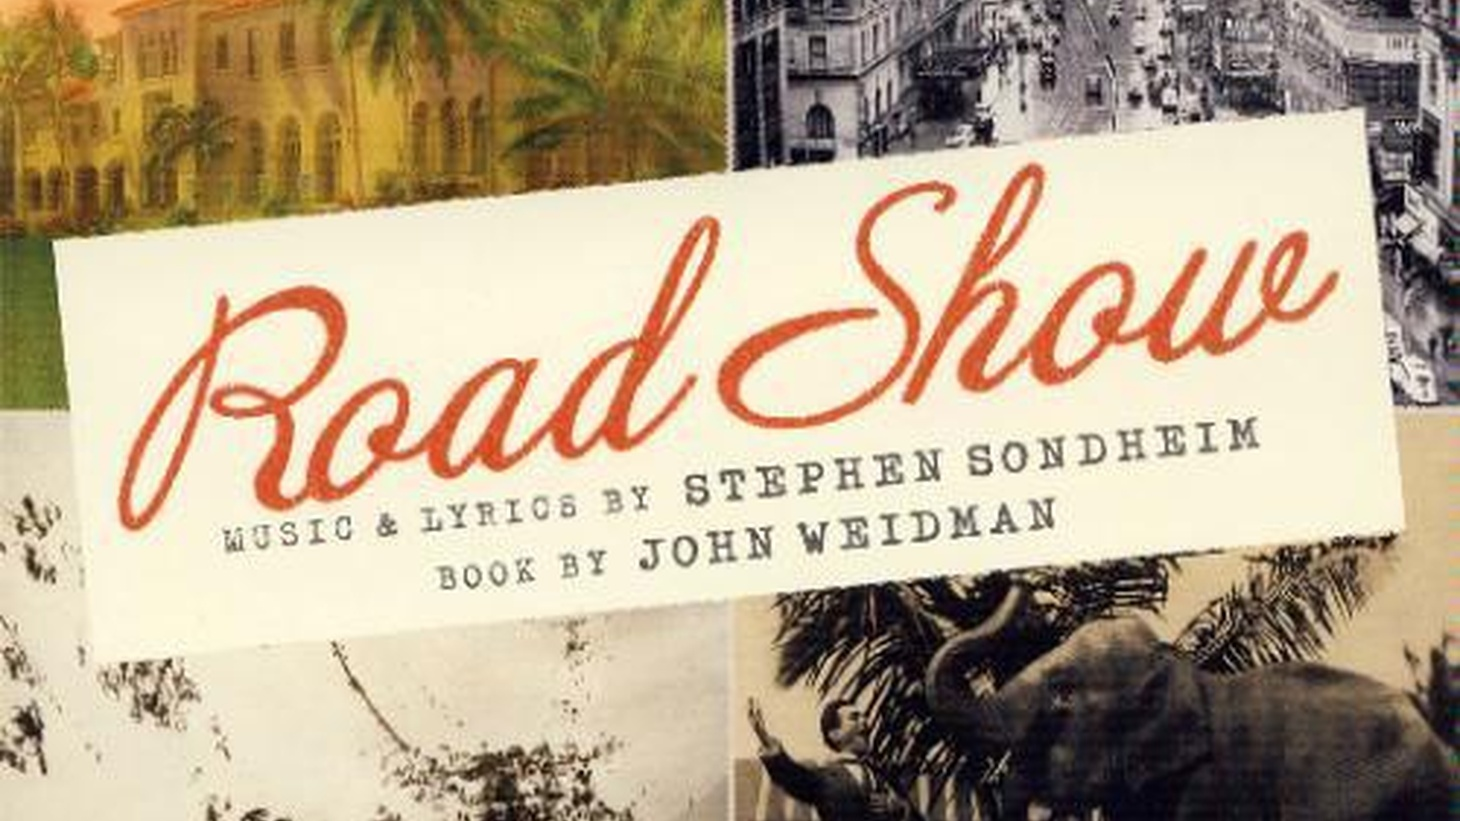 Road Show, a recording of the musical (Nonesuch, PS Classics) 